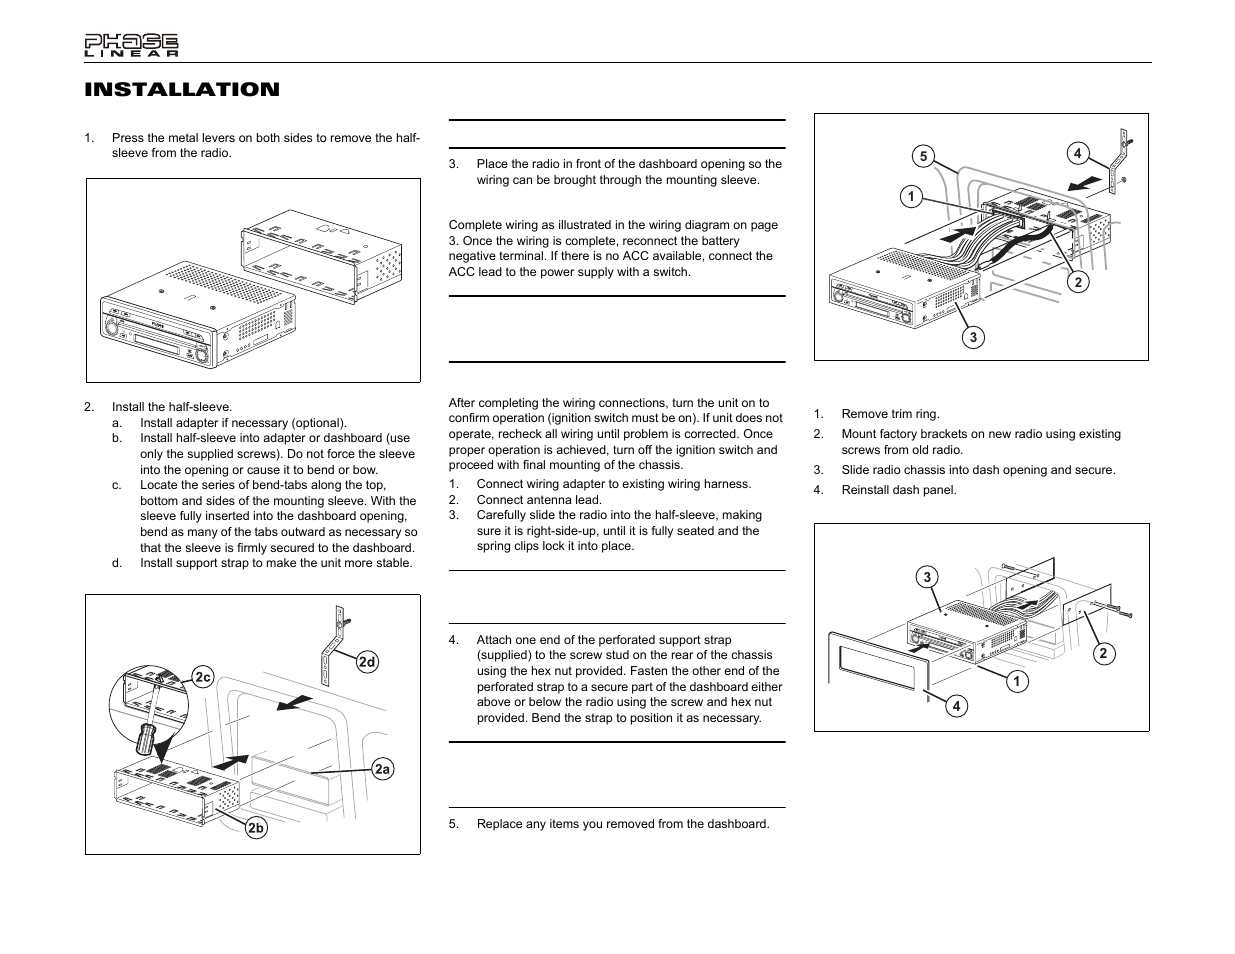 UV8 Wiring Diagram Jensen Phase Linear DVD Player Source. Uv8 installation  ...